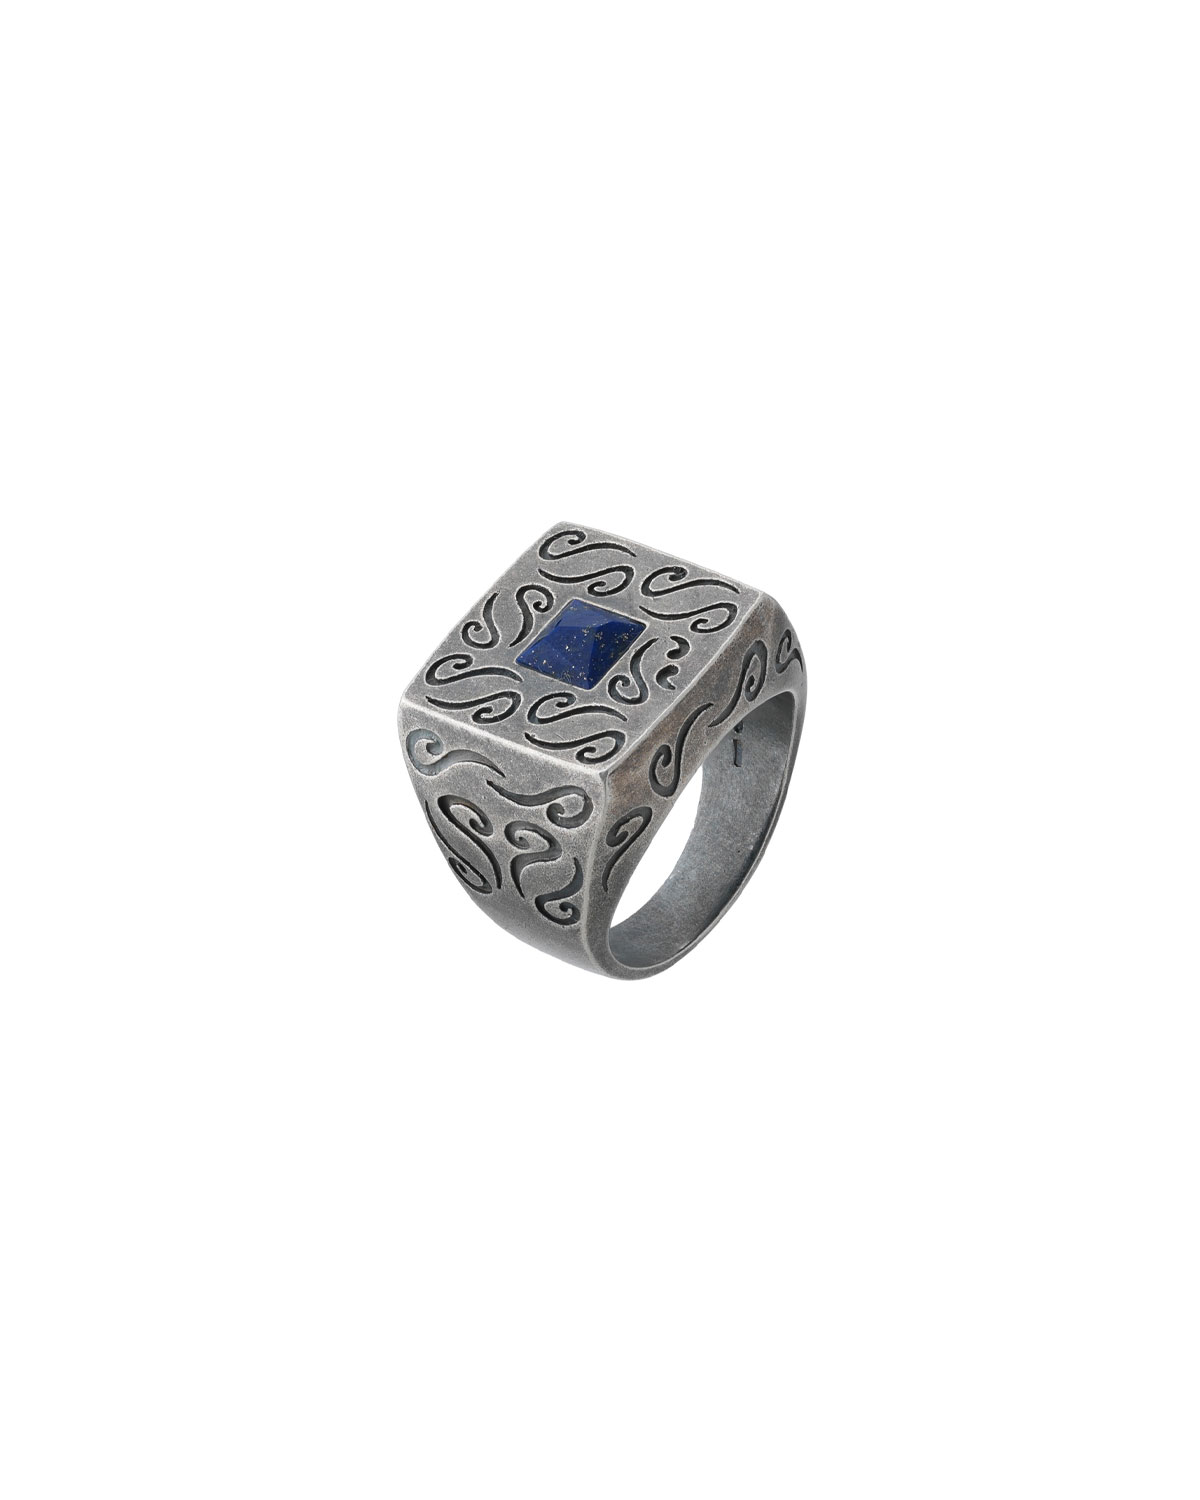 MARCO TA MOKO Men'S Oxidized Silver Ring With Lapis, Size 10